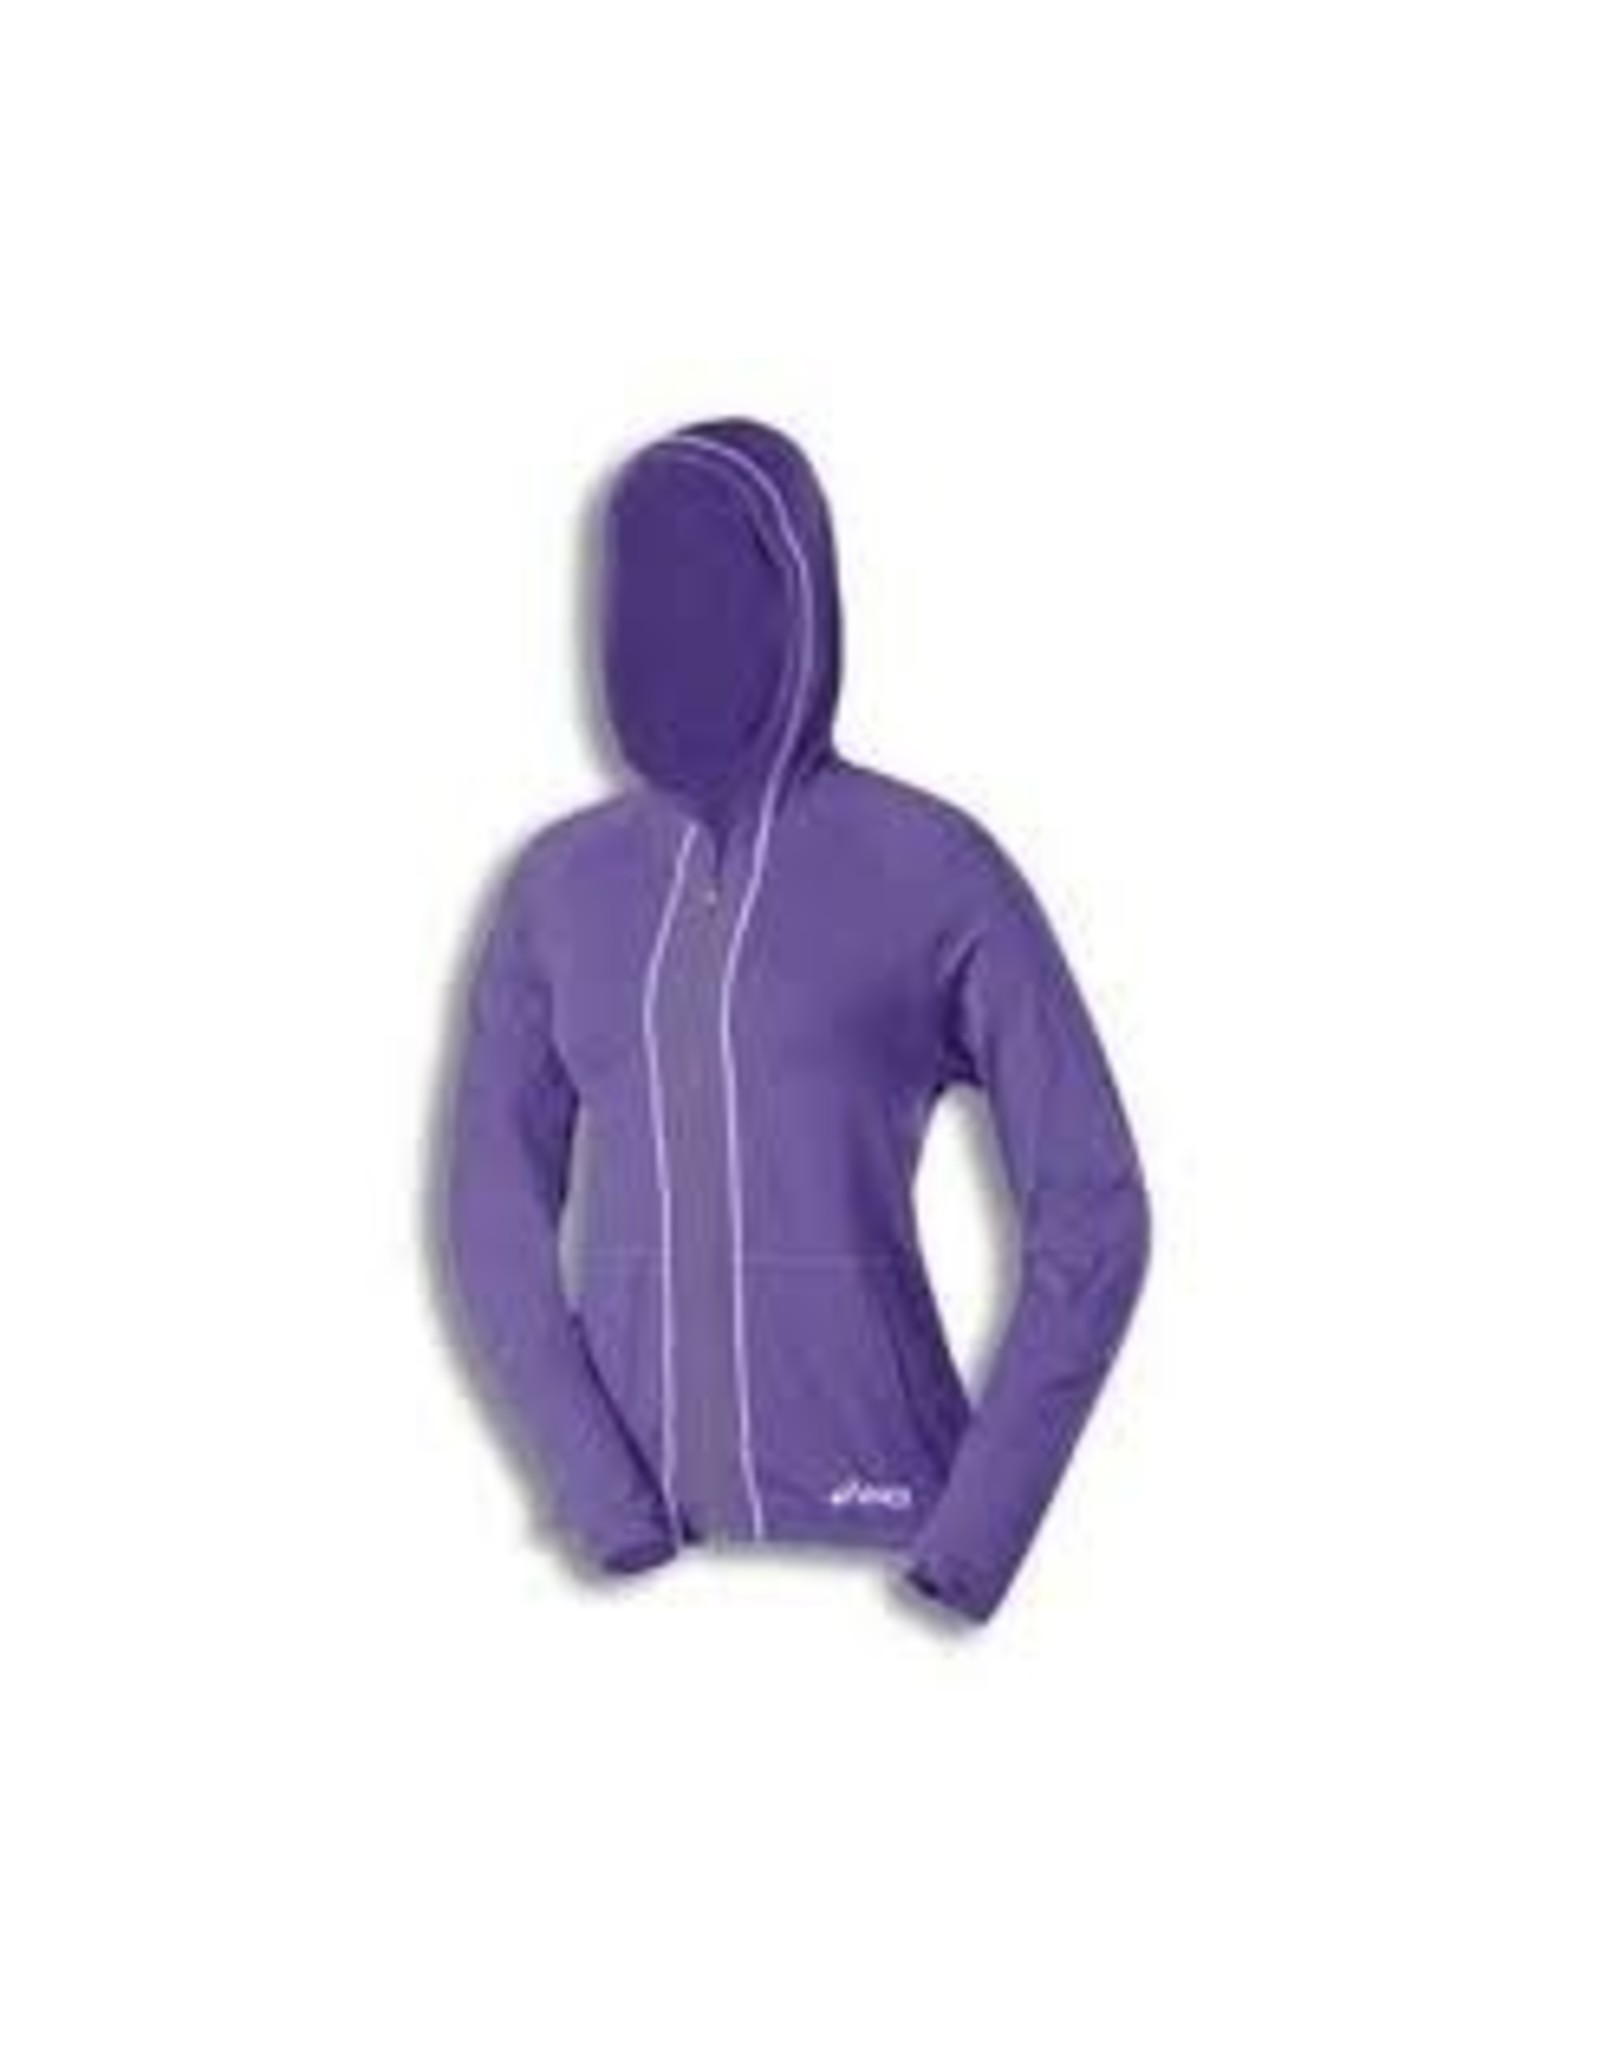 ASICS Aliso Hoody - Discontinued